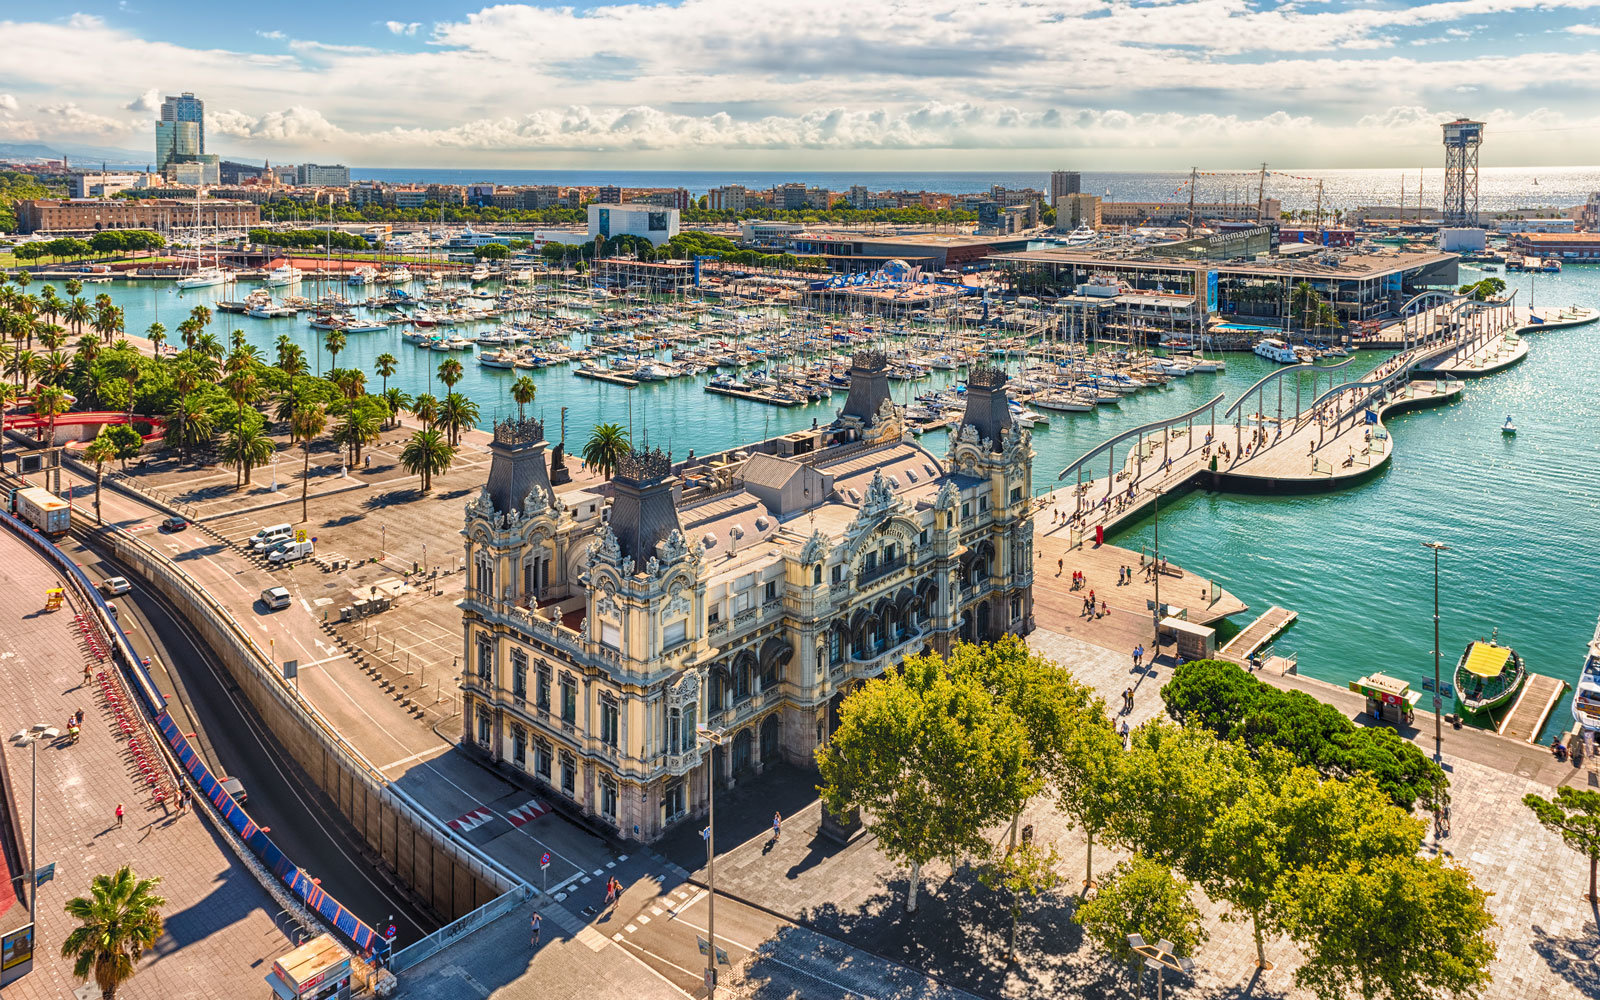 Barcelona Image: You Can Book Your Dream European Vacation Right Now For As